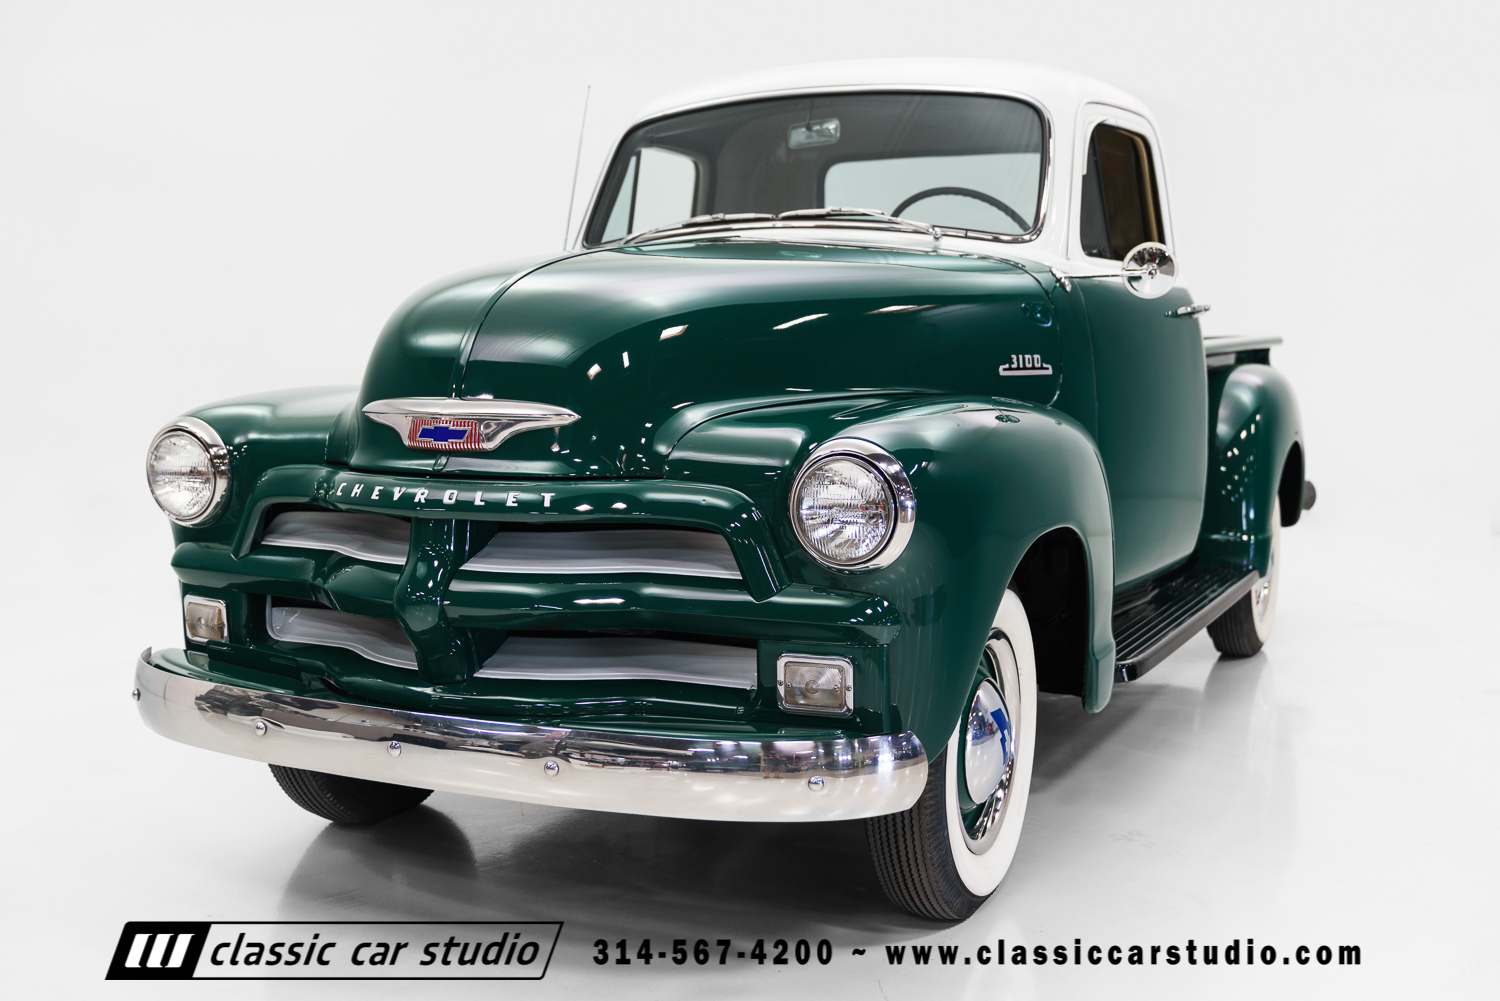 1954 Chevrolet 3100 Classic Car Studio